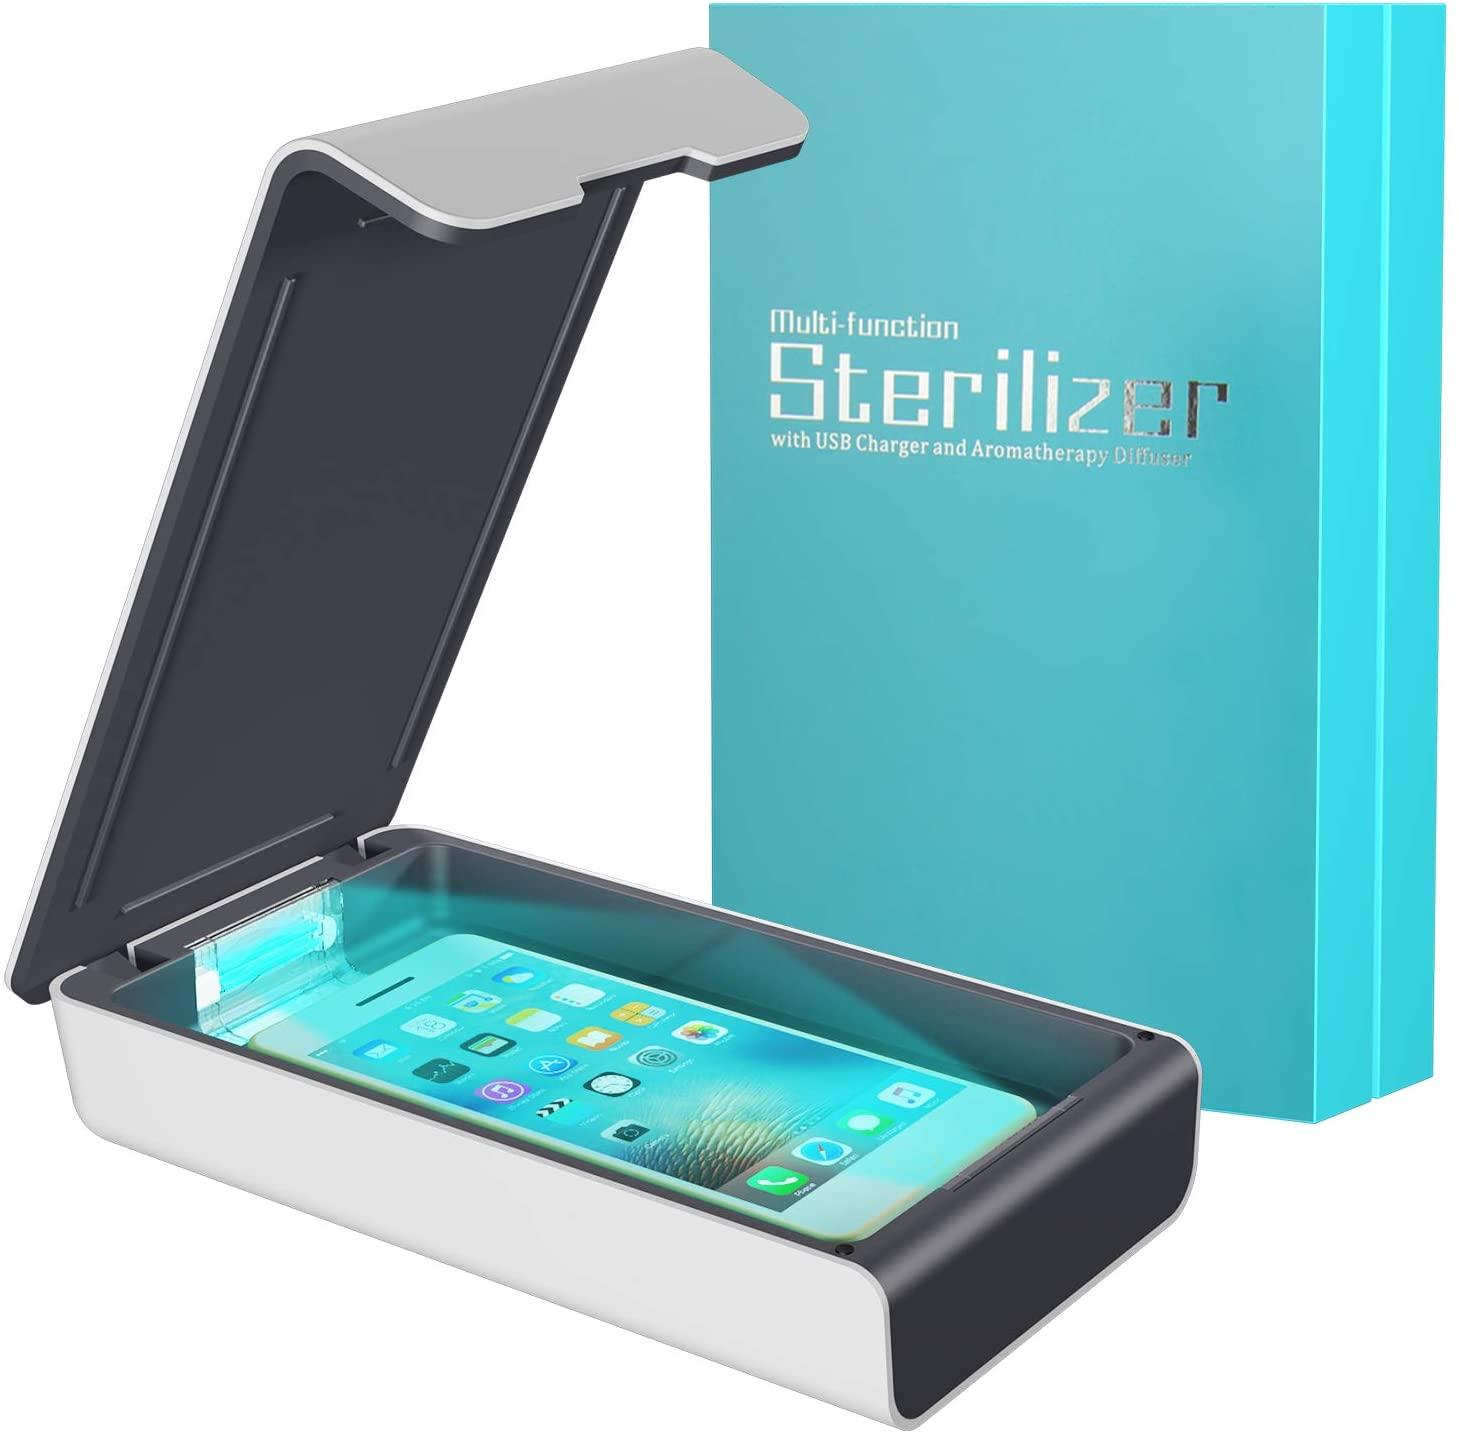 Phone Sanitizer, Portable UVC Sterilize Box with Aromatherapy Function for Smartphone Cleaner, Clinically Proven UV Light Disinfector-White